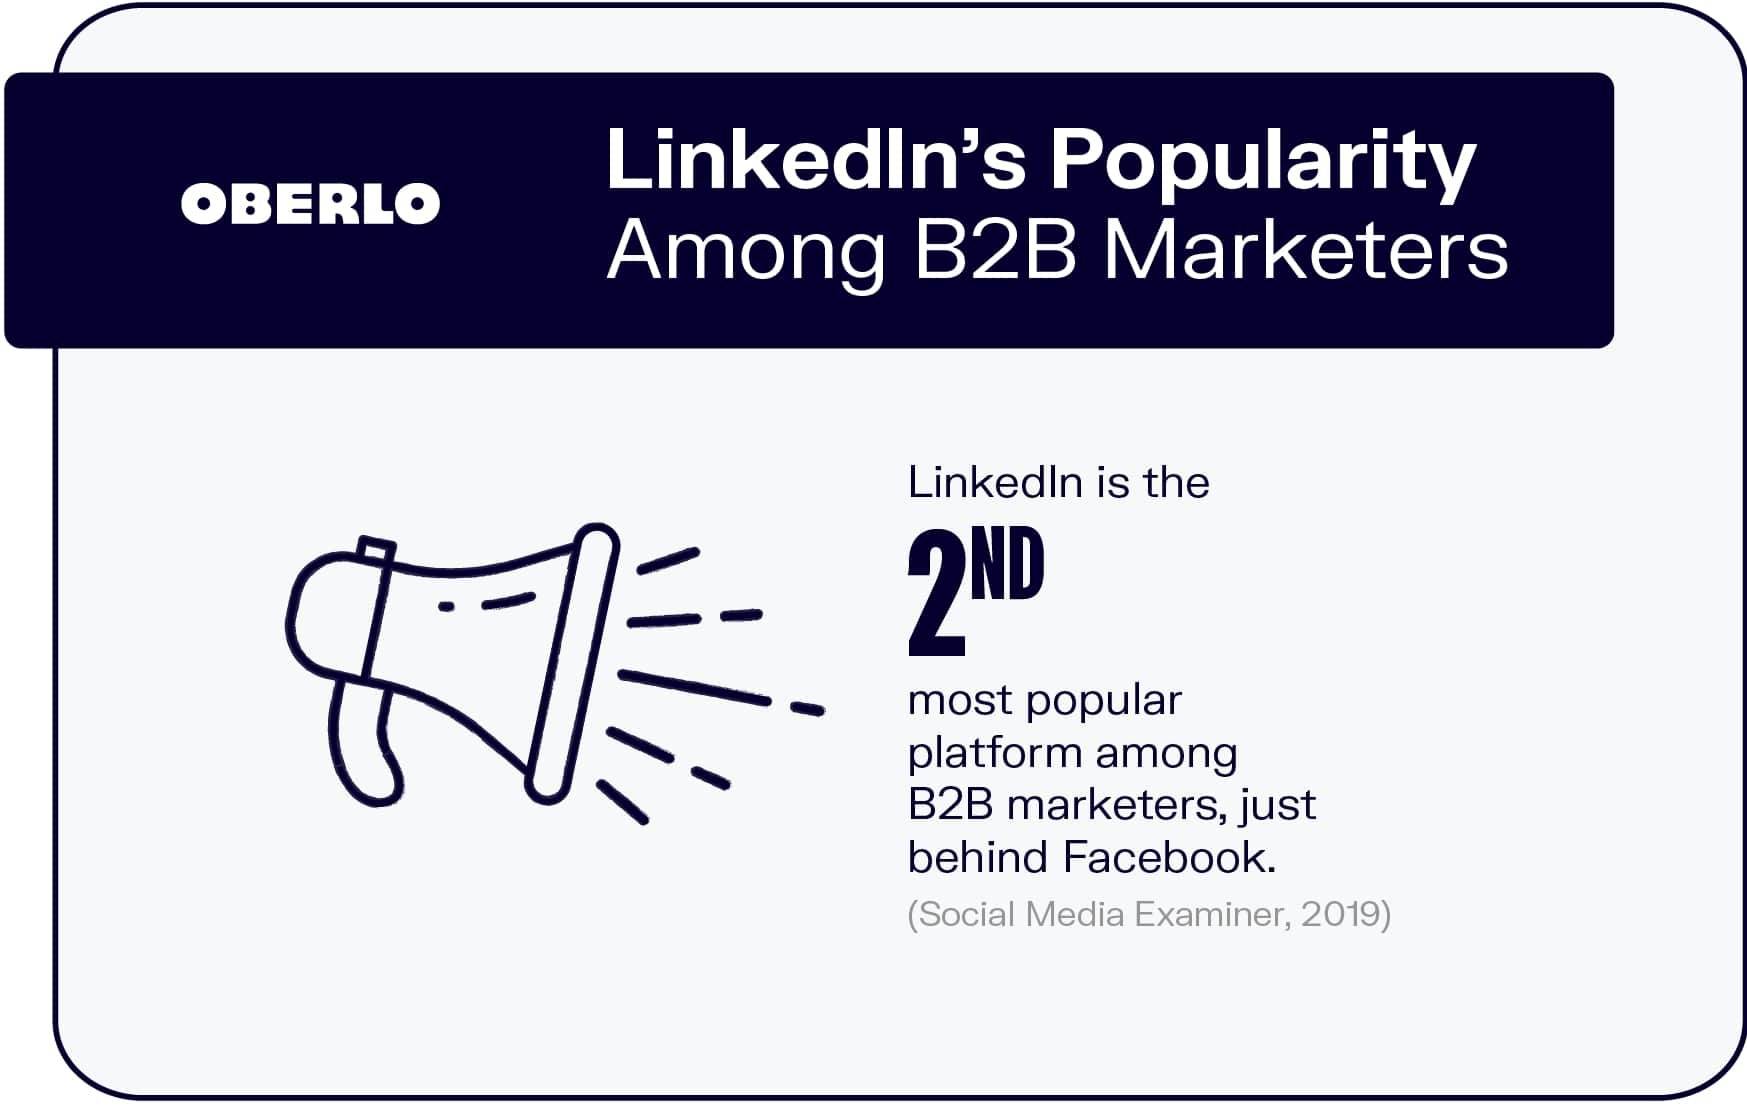 LinkedIn's Popularity Among B2B Marketers